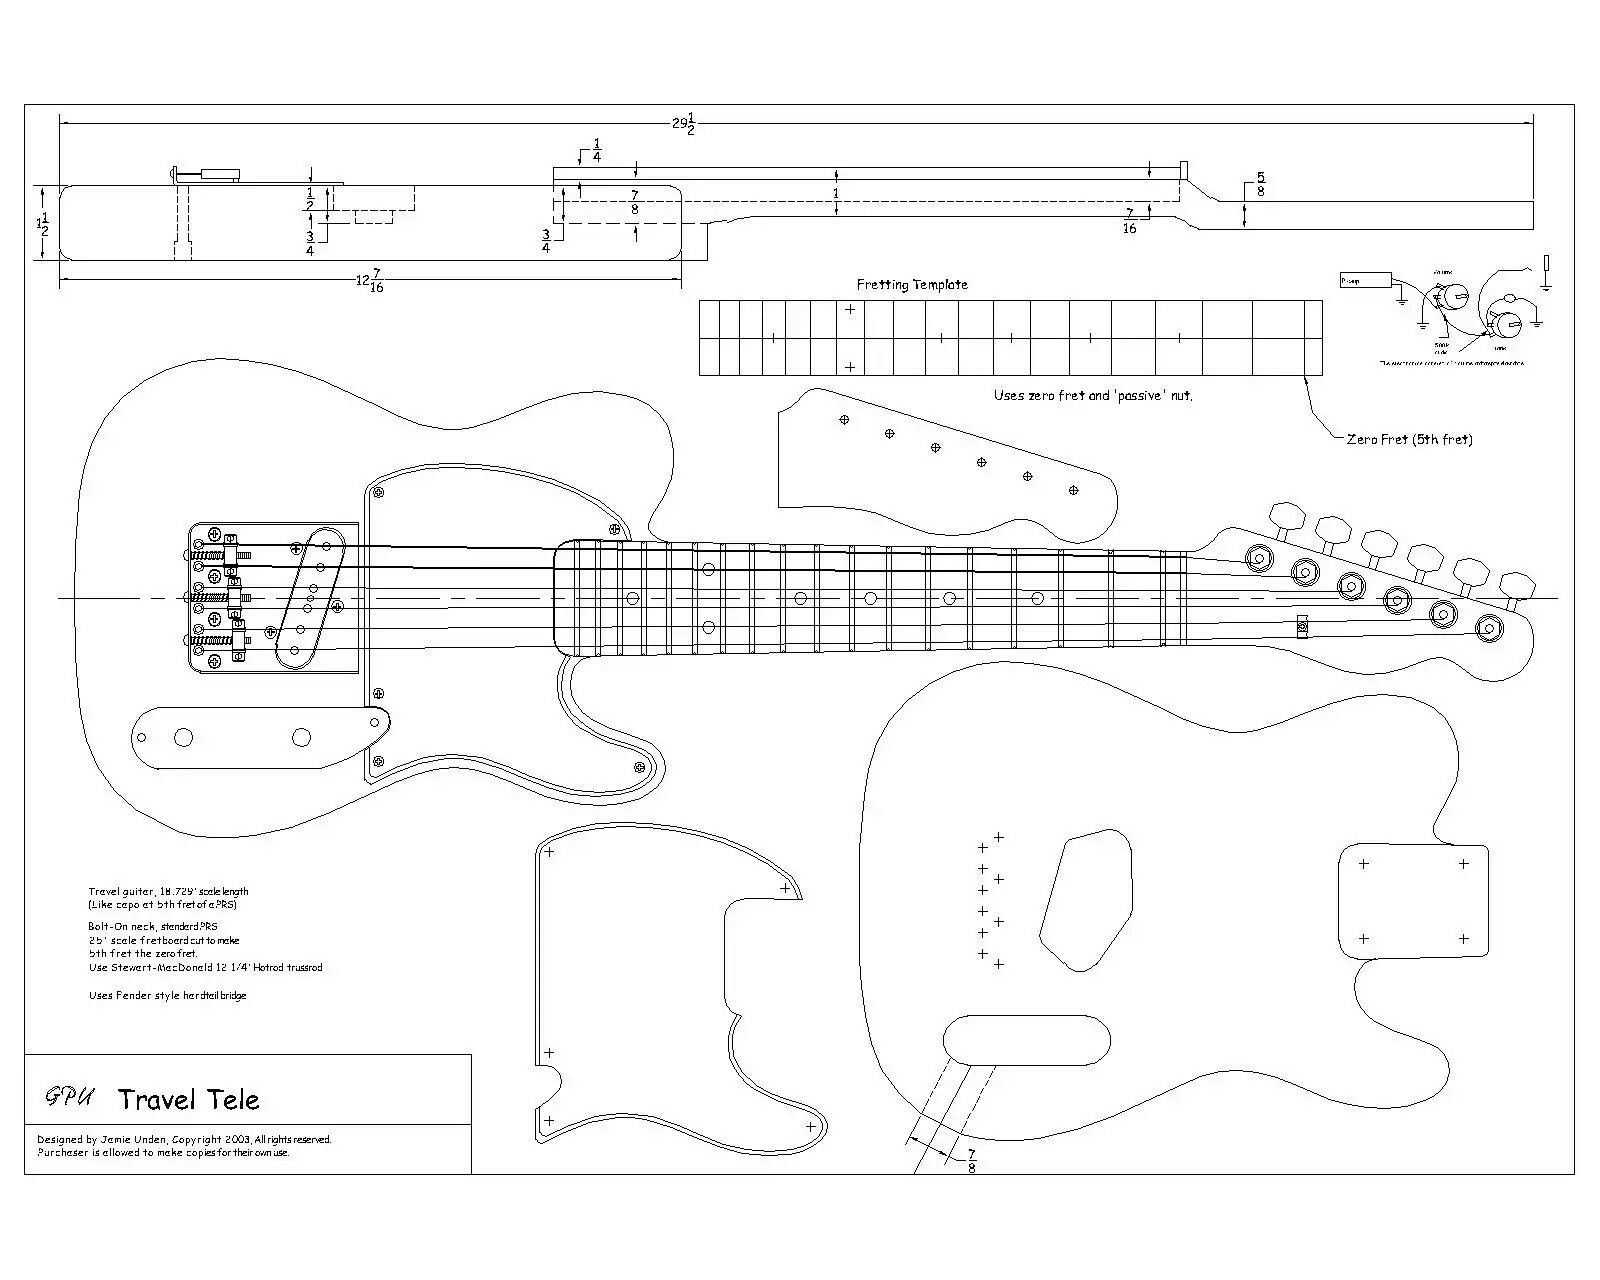 Routing Template for tele body and neck?   Telecaster Guitar Forum ...